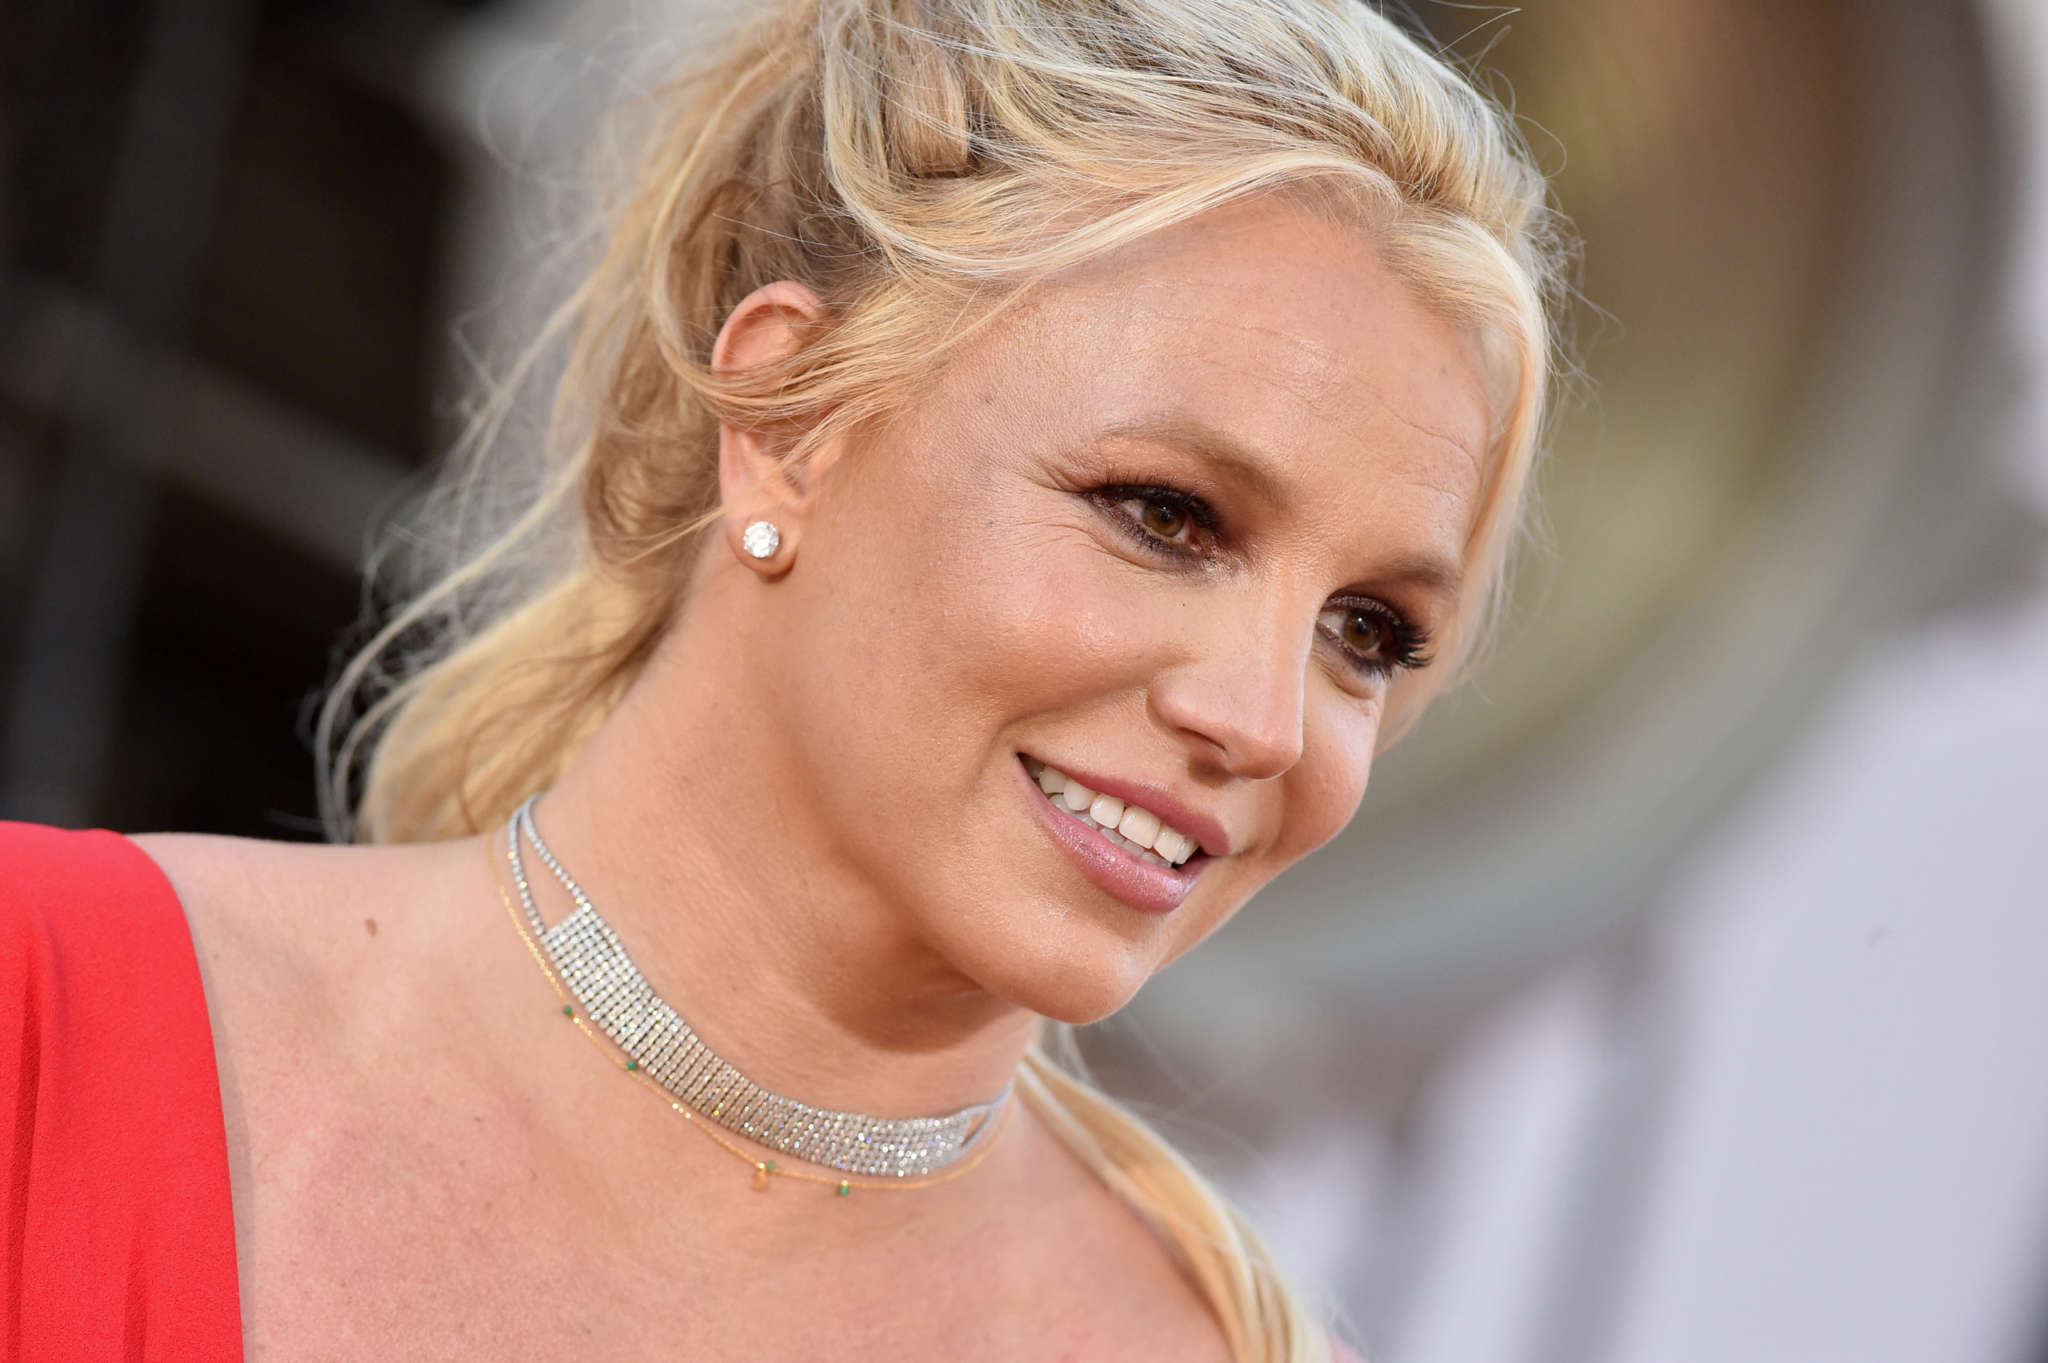 britney-spears-producer-brother-bryan-spears-addresses-the-whole-freebritney-movement